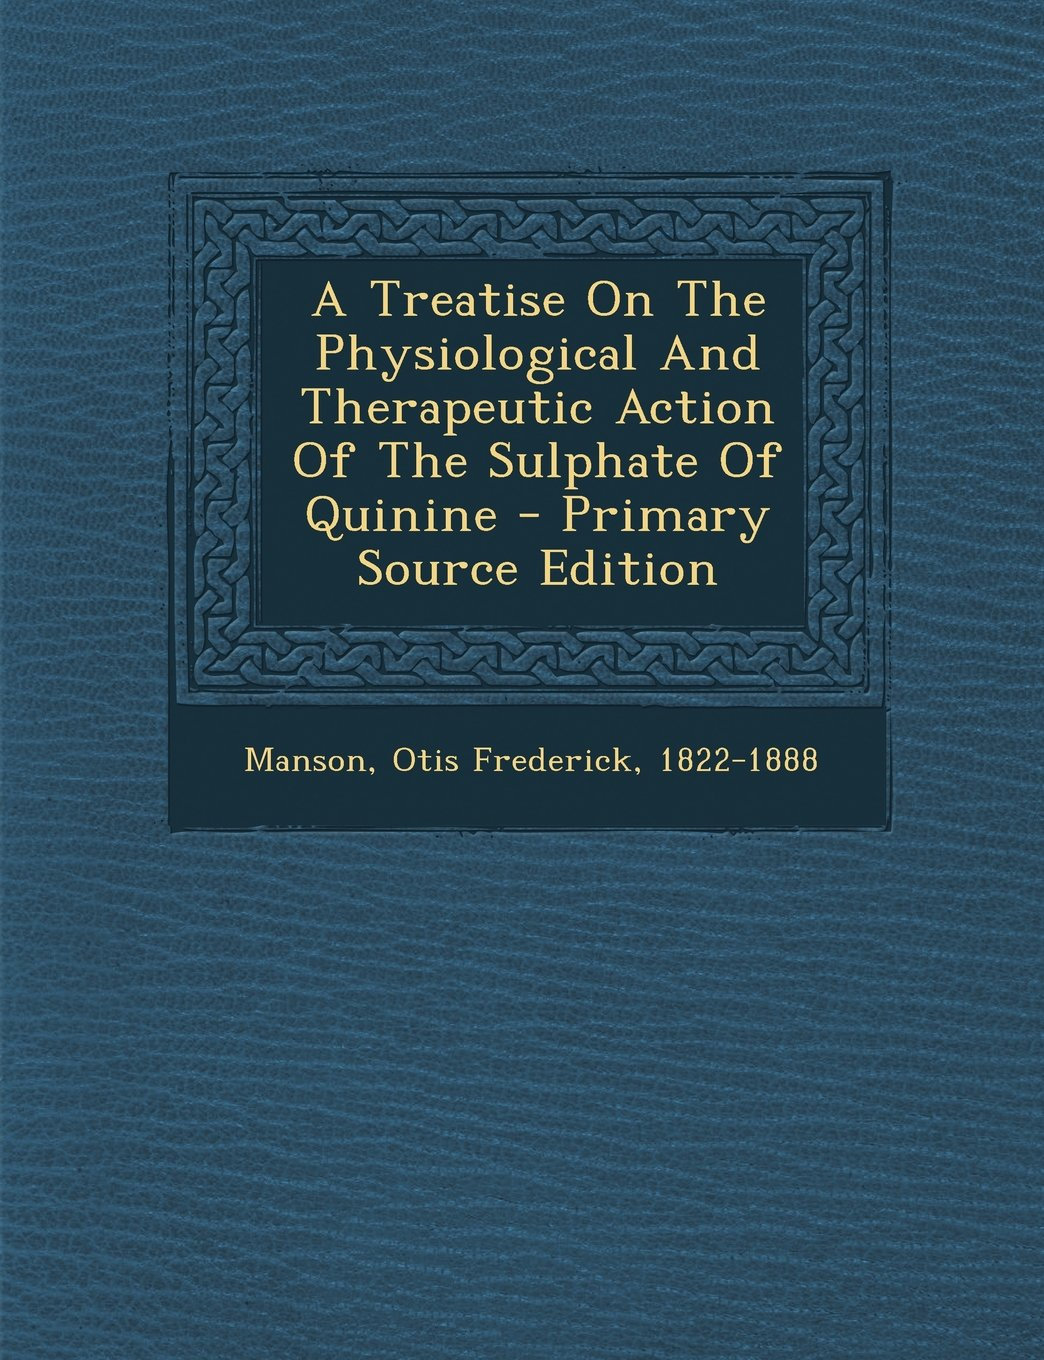 Read Online A Treatise on the Physiological and Therapeutic Action of the Sulphate of Quinine - Primary Source Edition PDF